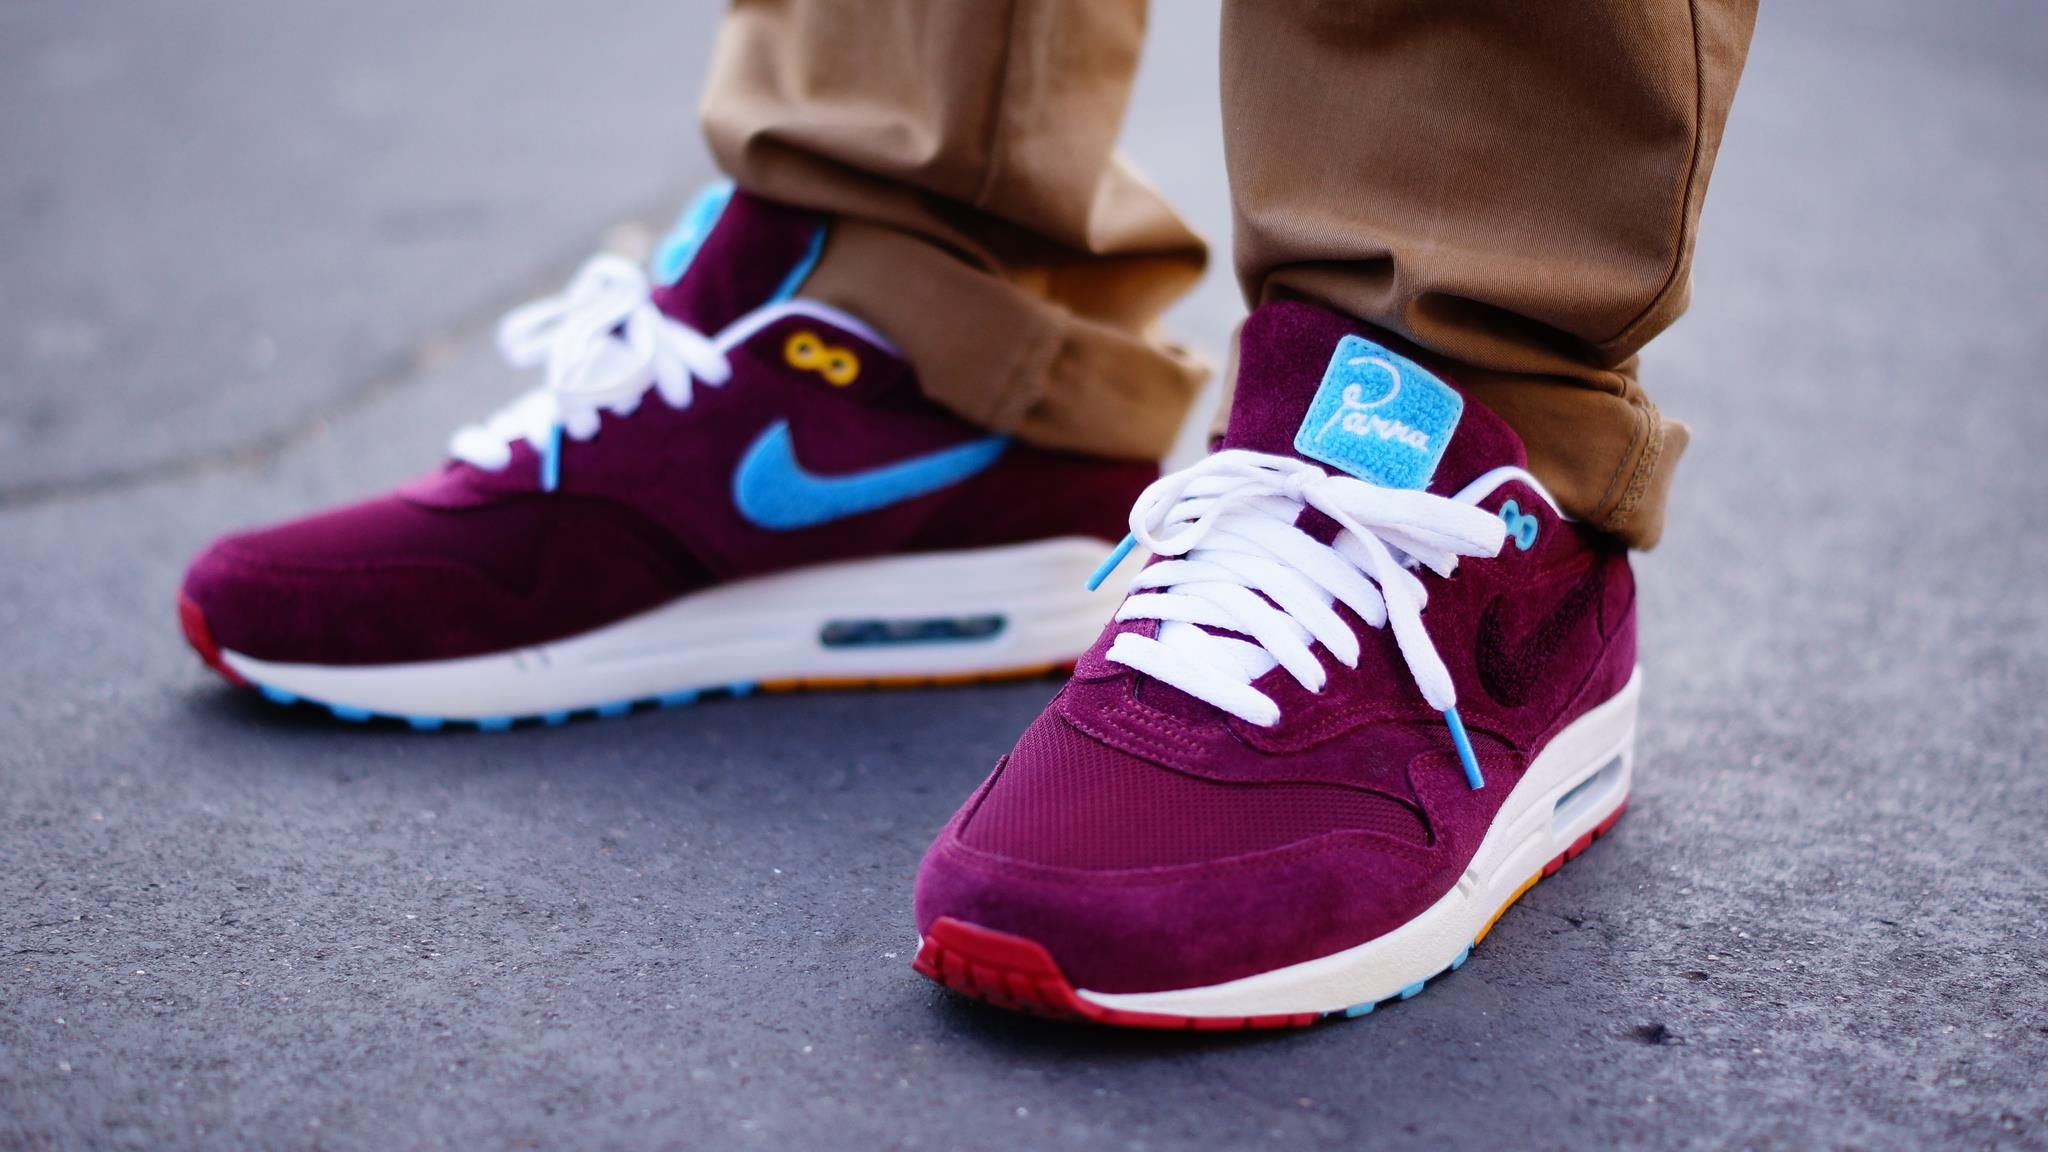 af355002013  Nike x  Parra x  Patta  AirMax1 This super limited  AM1 is a collaboration  between Parra